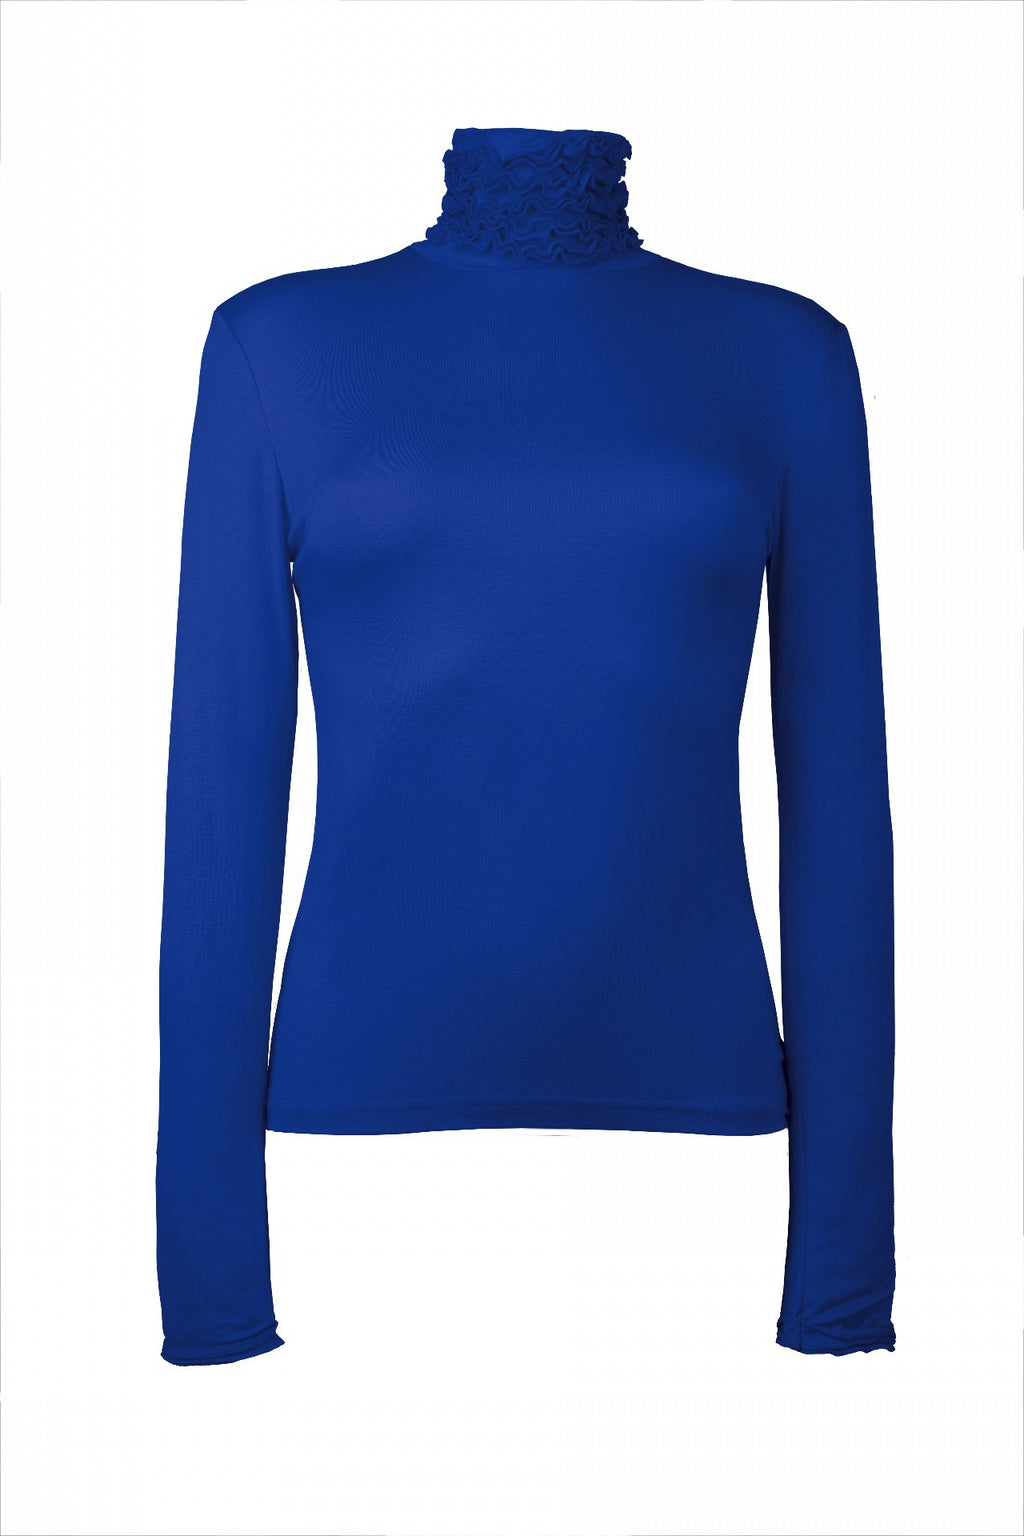 Fine Knit Ruffle Polo Neck Jumper - Royal Blue